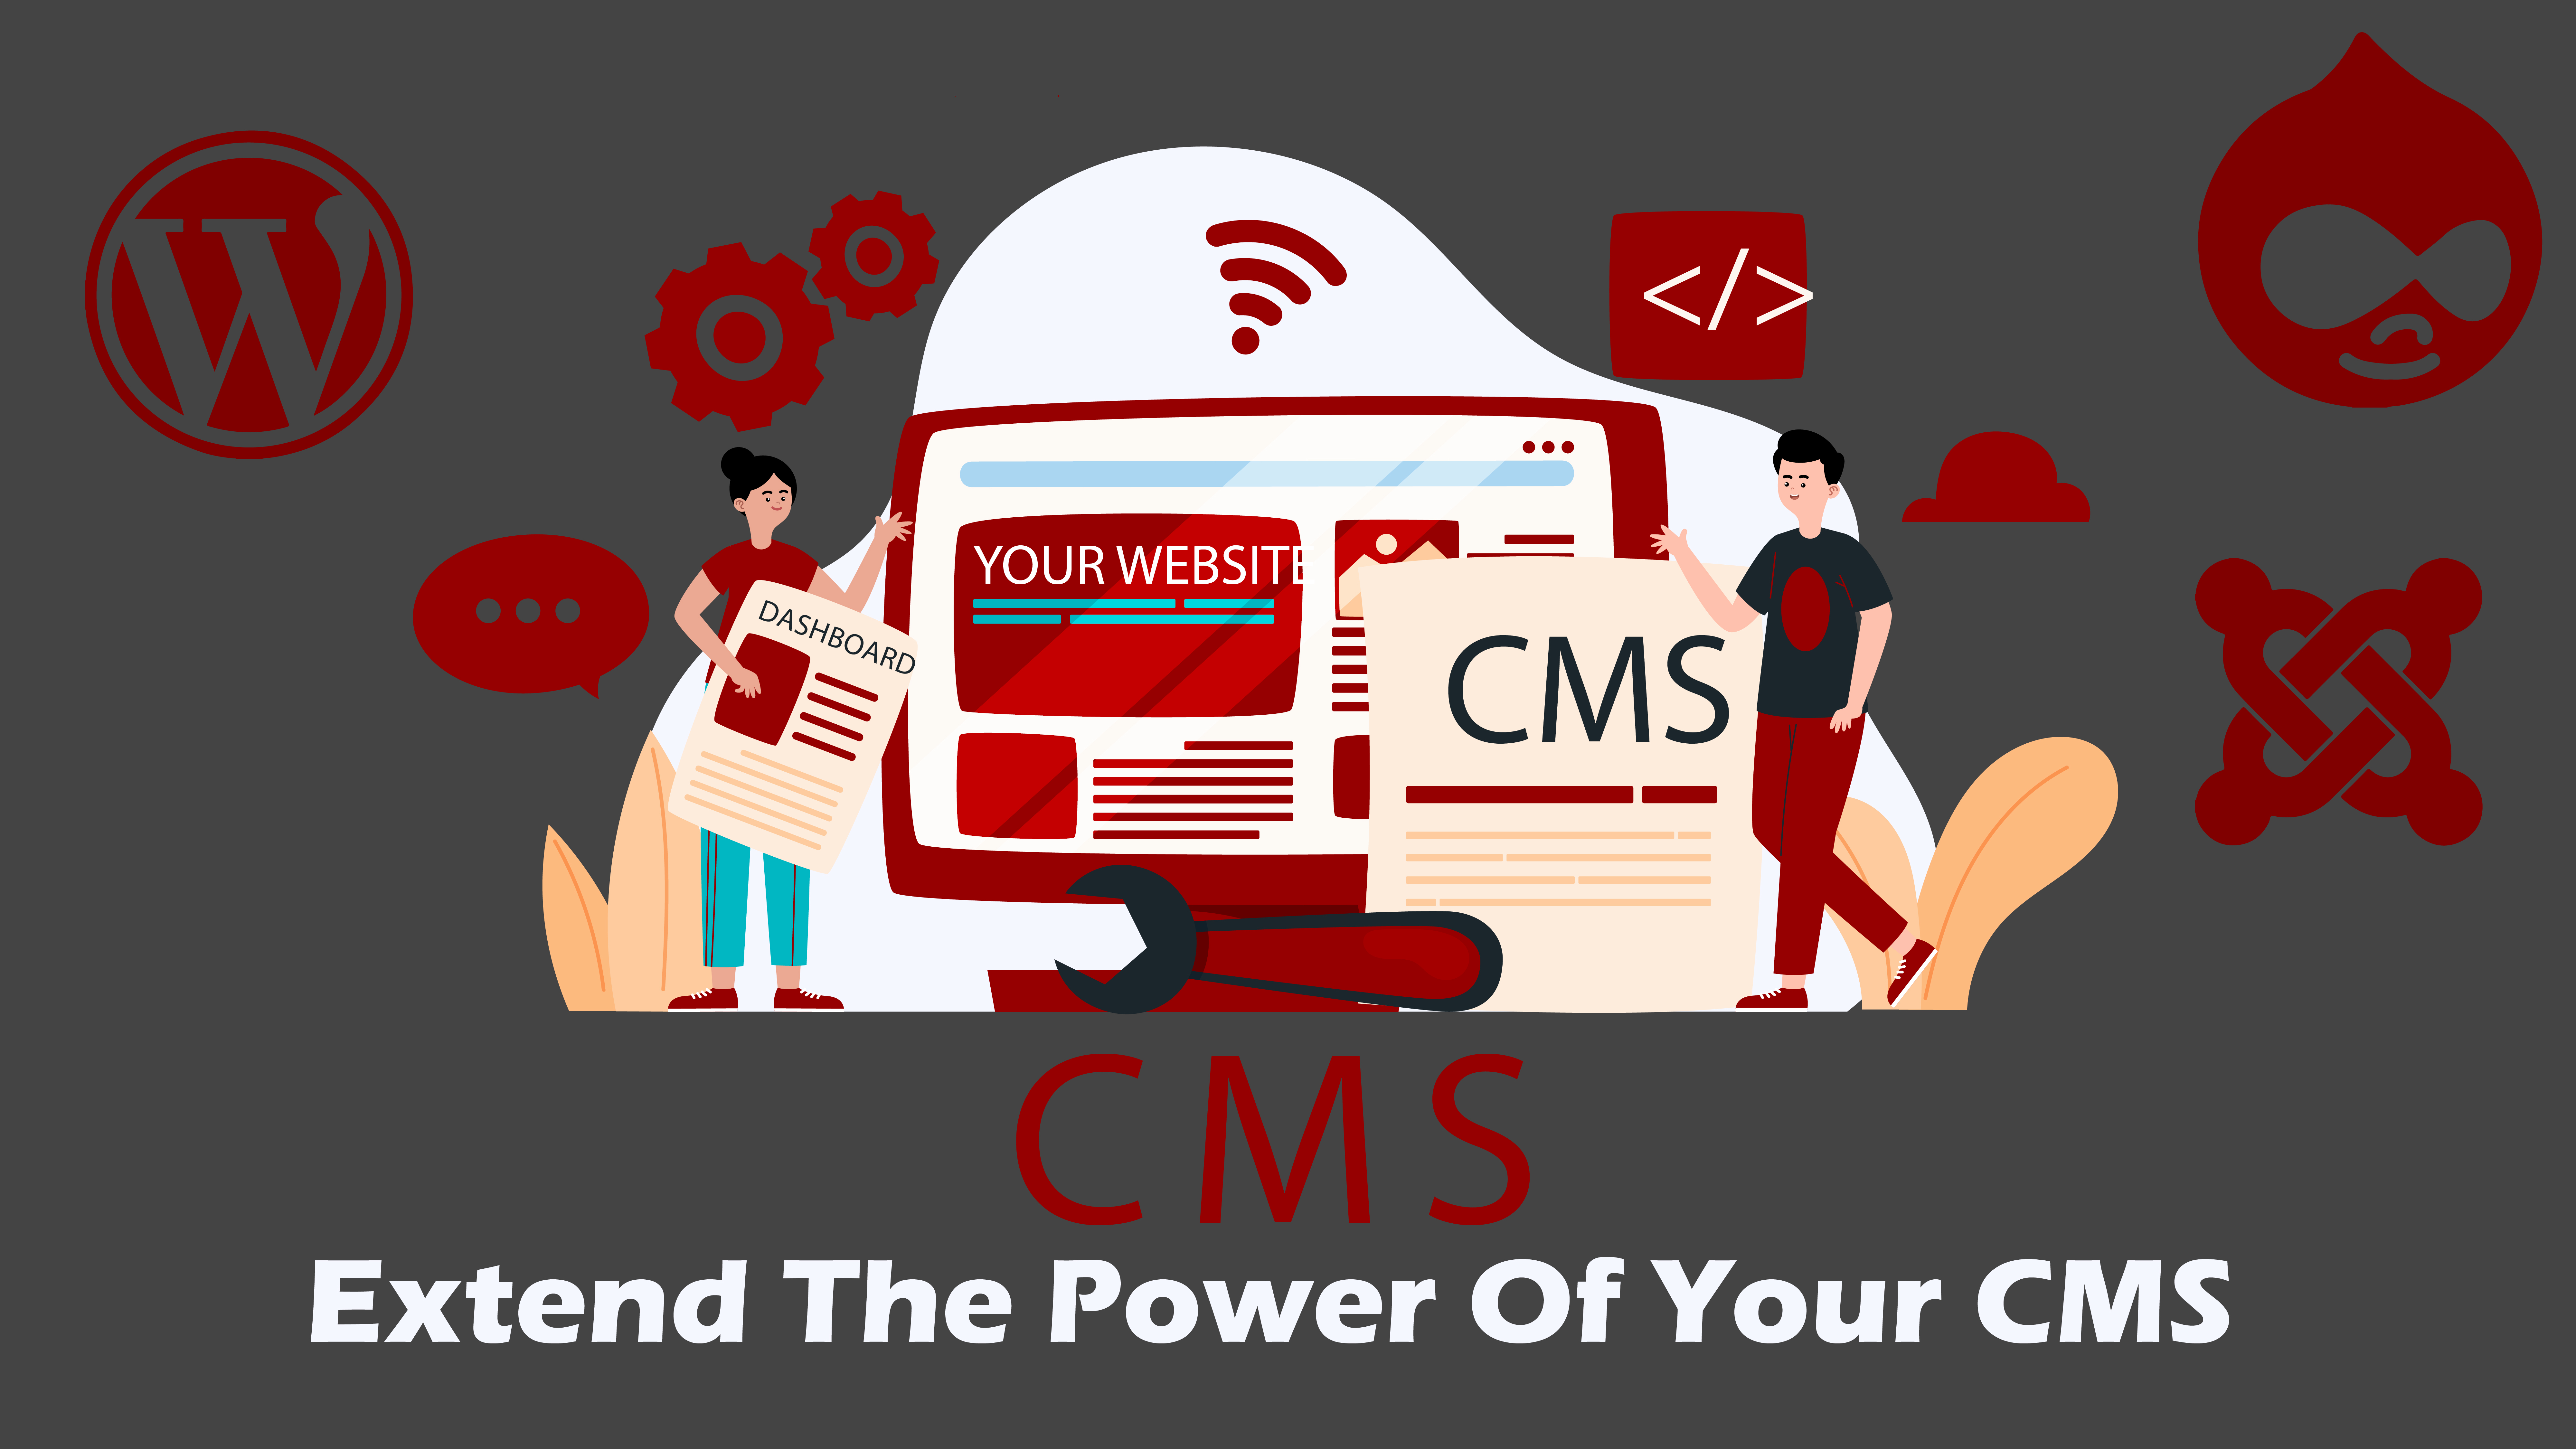 Custom extensions, widgets, modules for Joomla, WordPress and Drupal – make your website more powerful